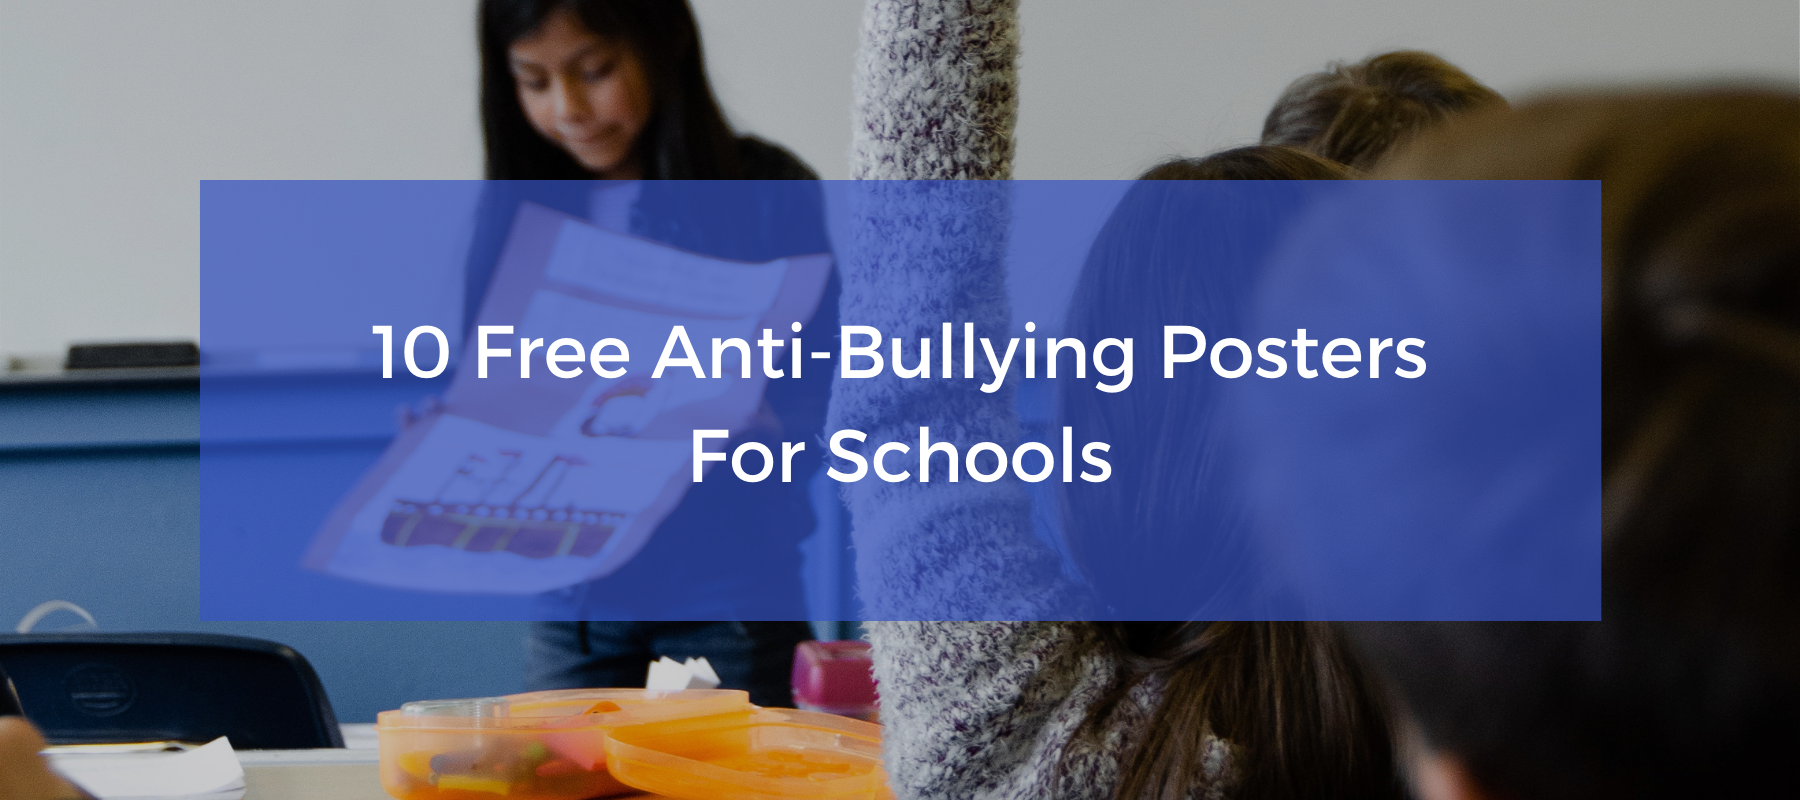 Free anti-bullying posters for schools to download.